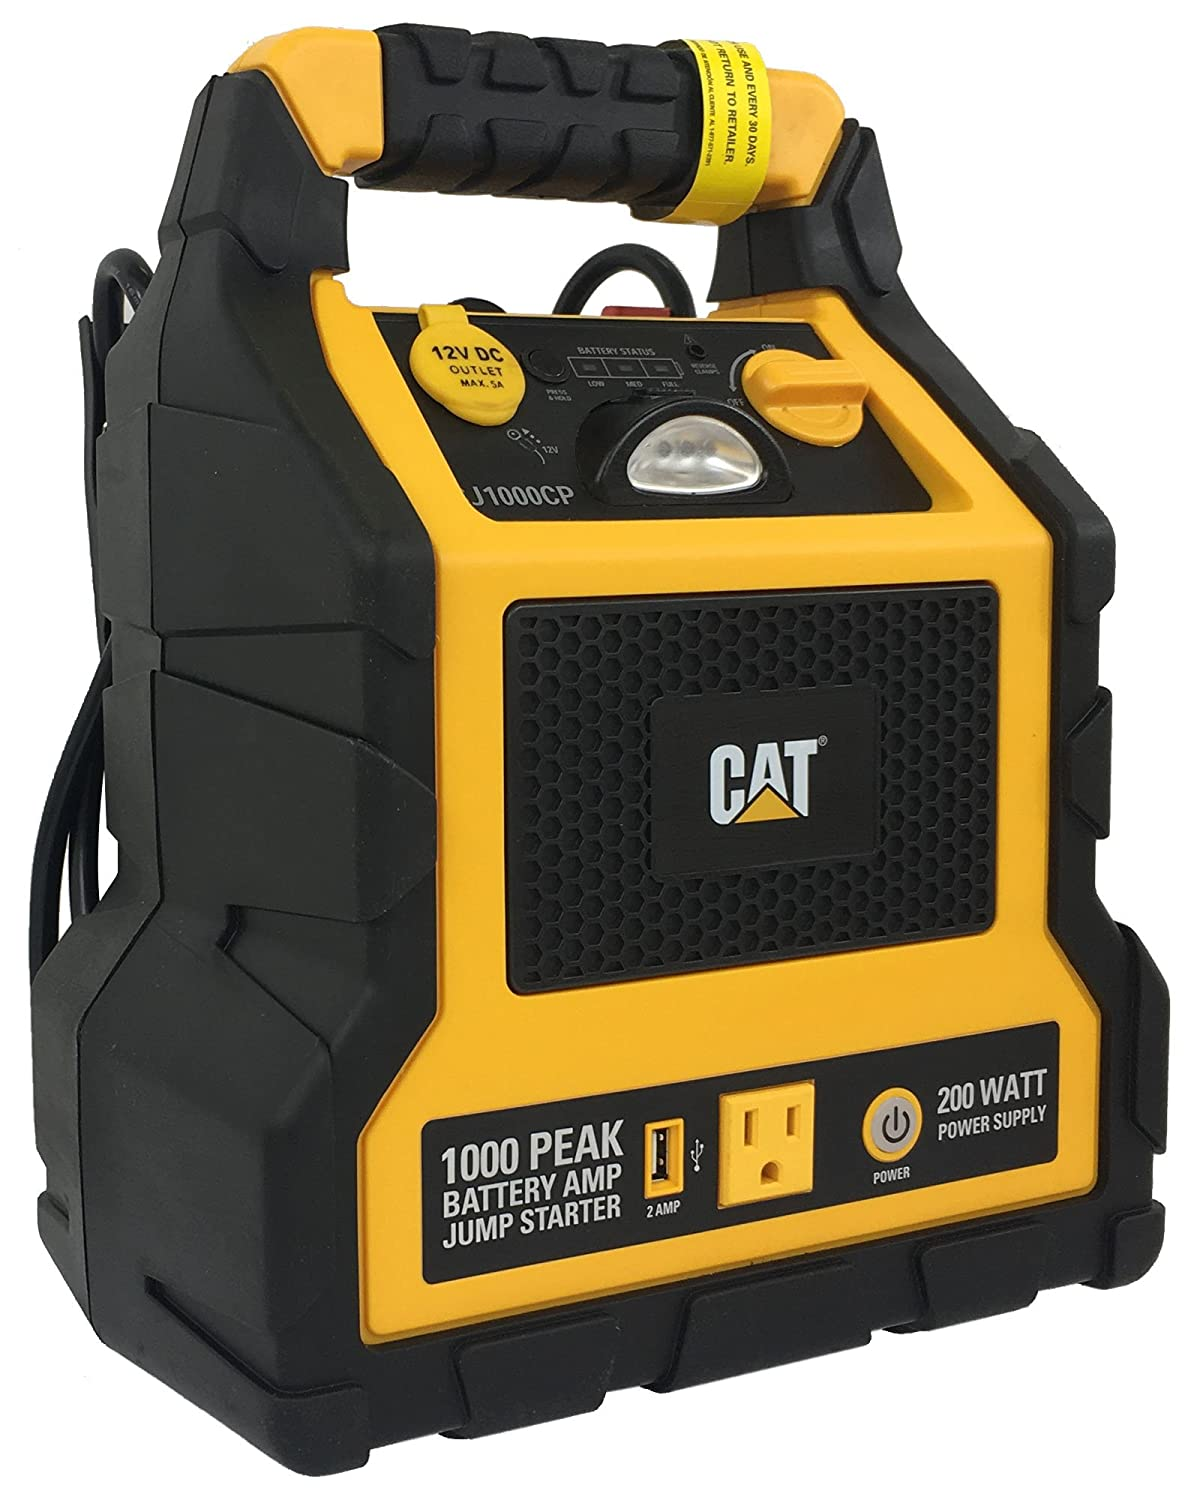 3 In 1 Cat Professional Power Station With Jump Re Charging A Car Battery Computer Supply Starter Compressor Garden Outdoor